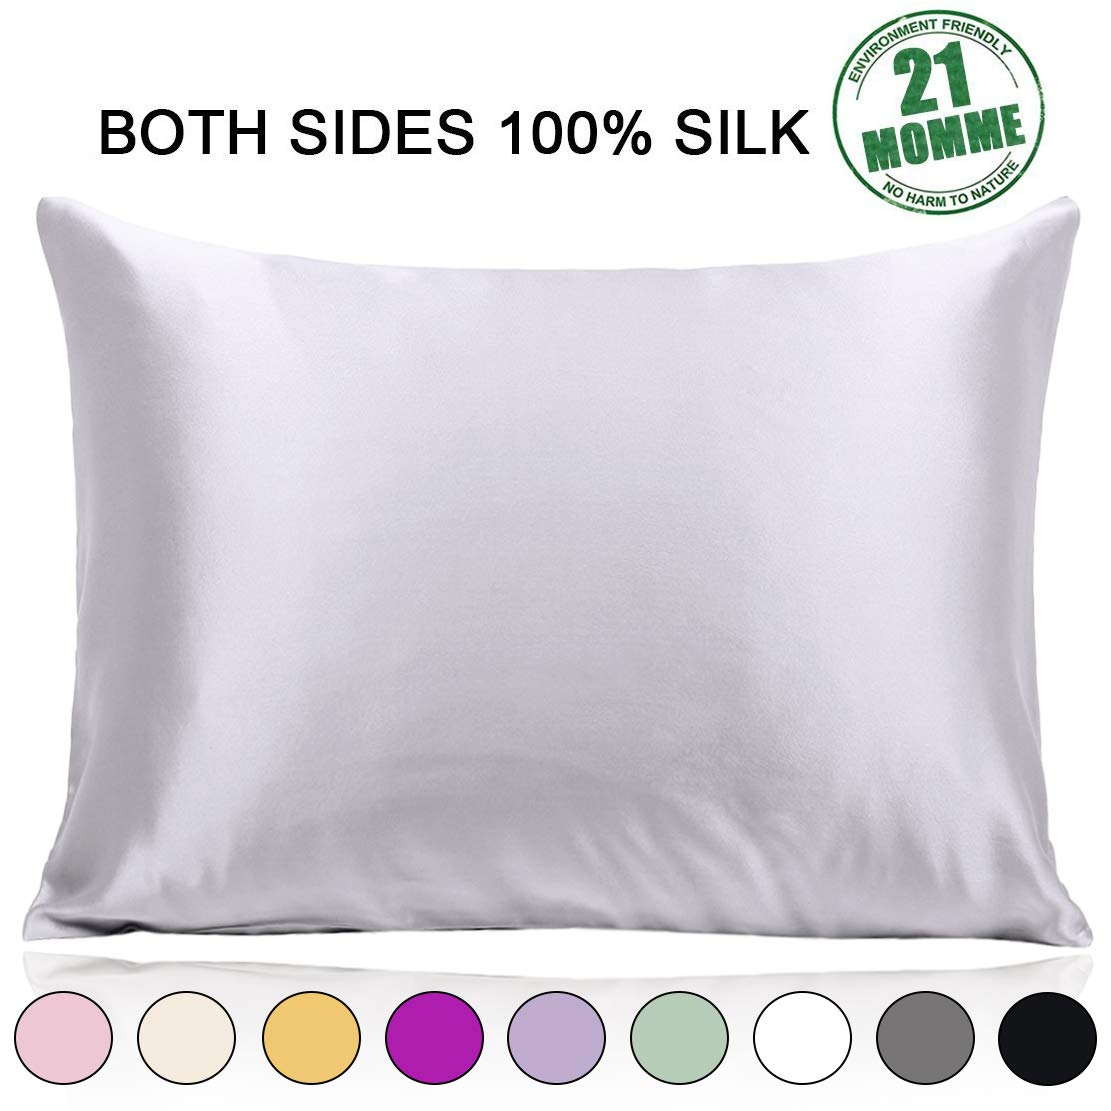 Mulberry Pillowcase Hypoallergenic Breathable 20%C3%9726inch